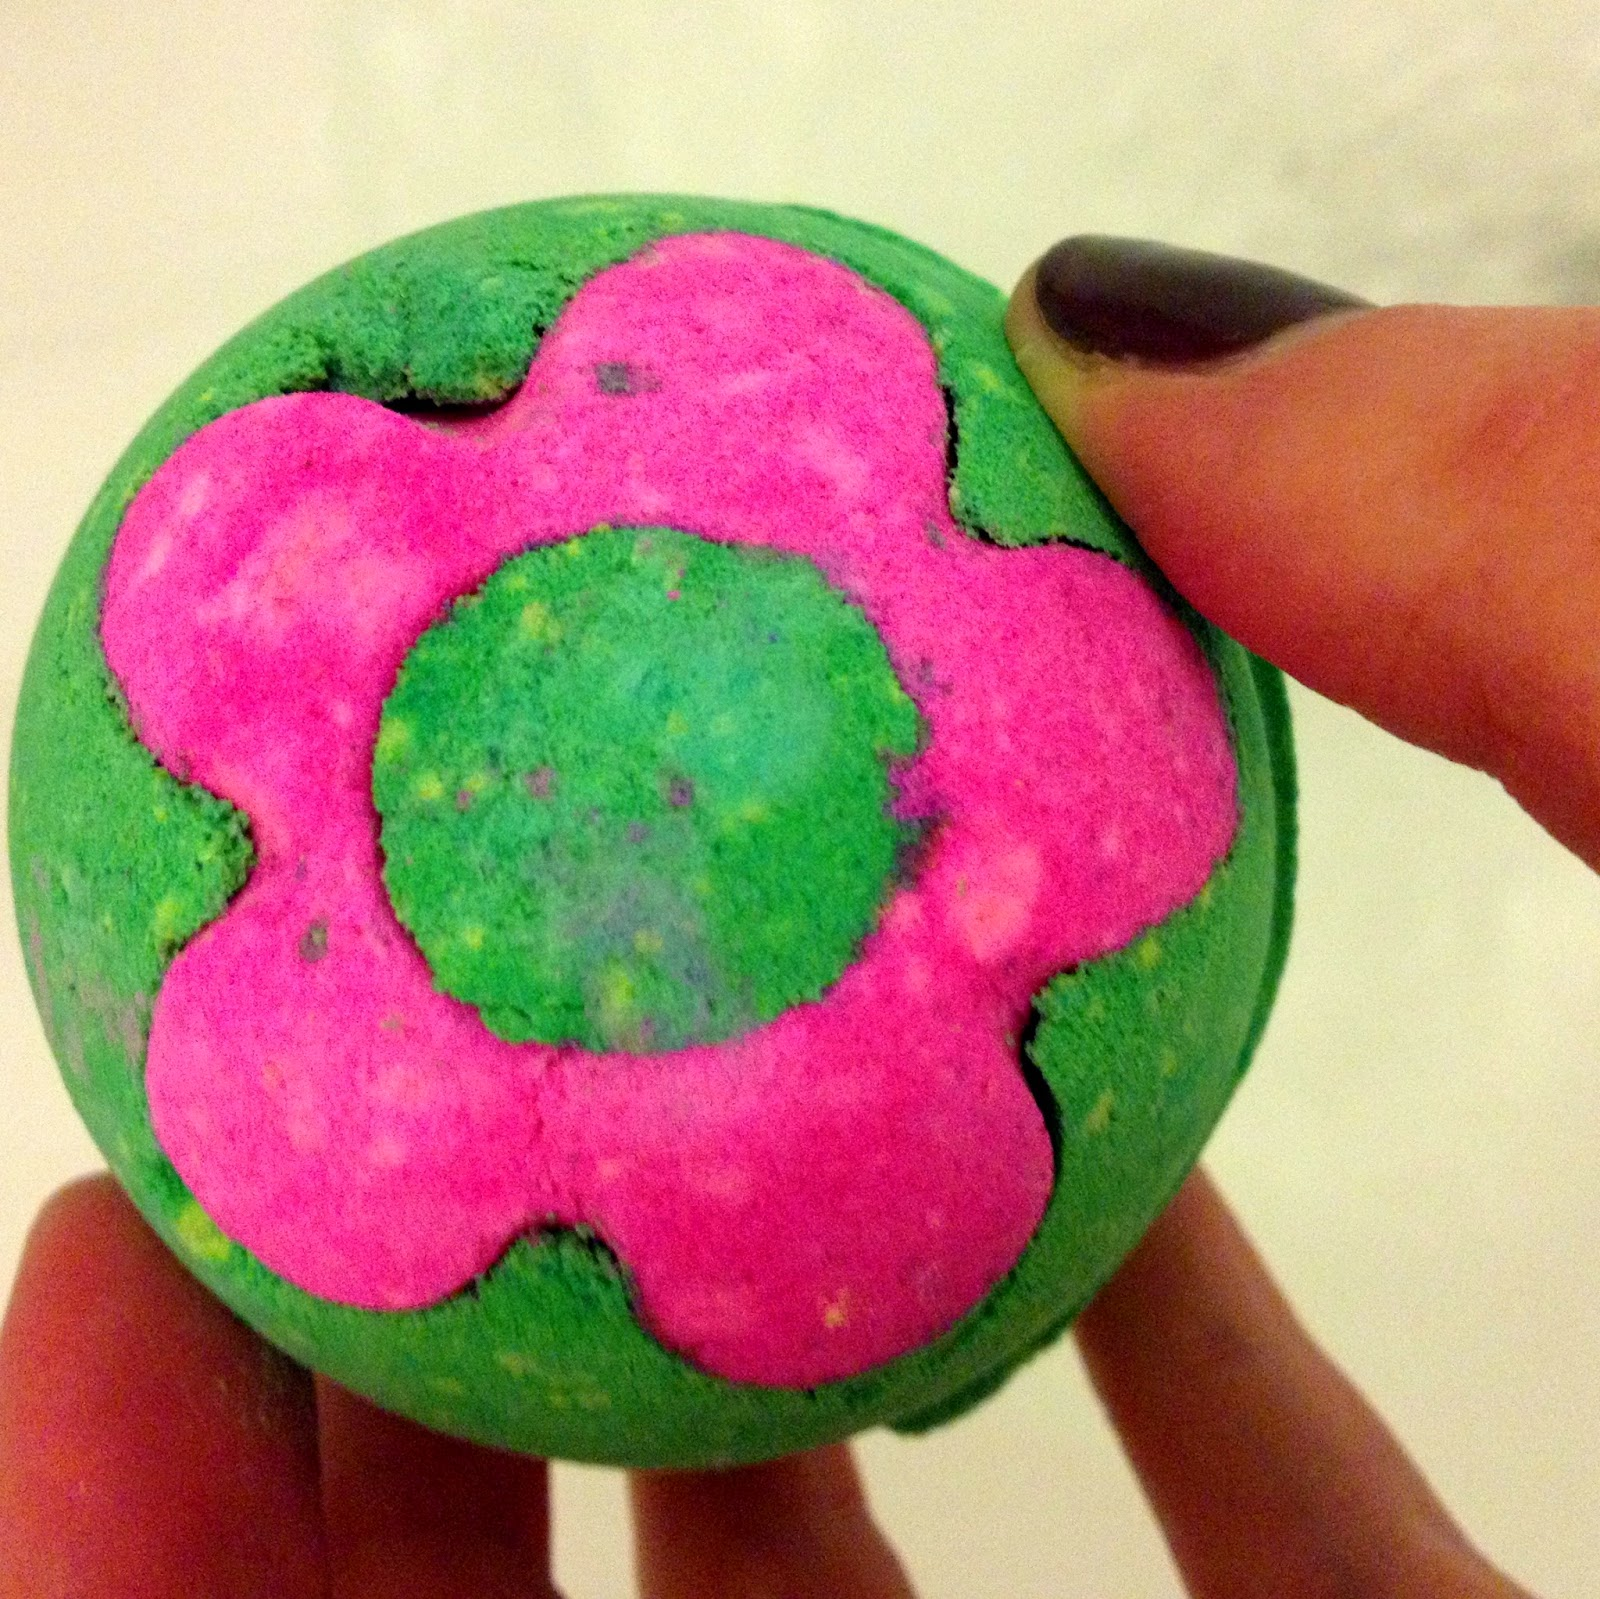 Lush blog review